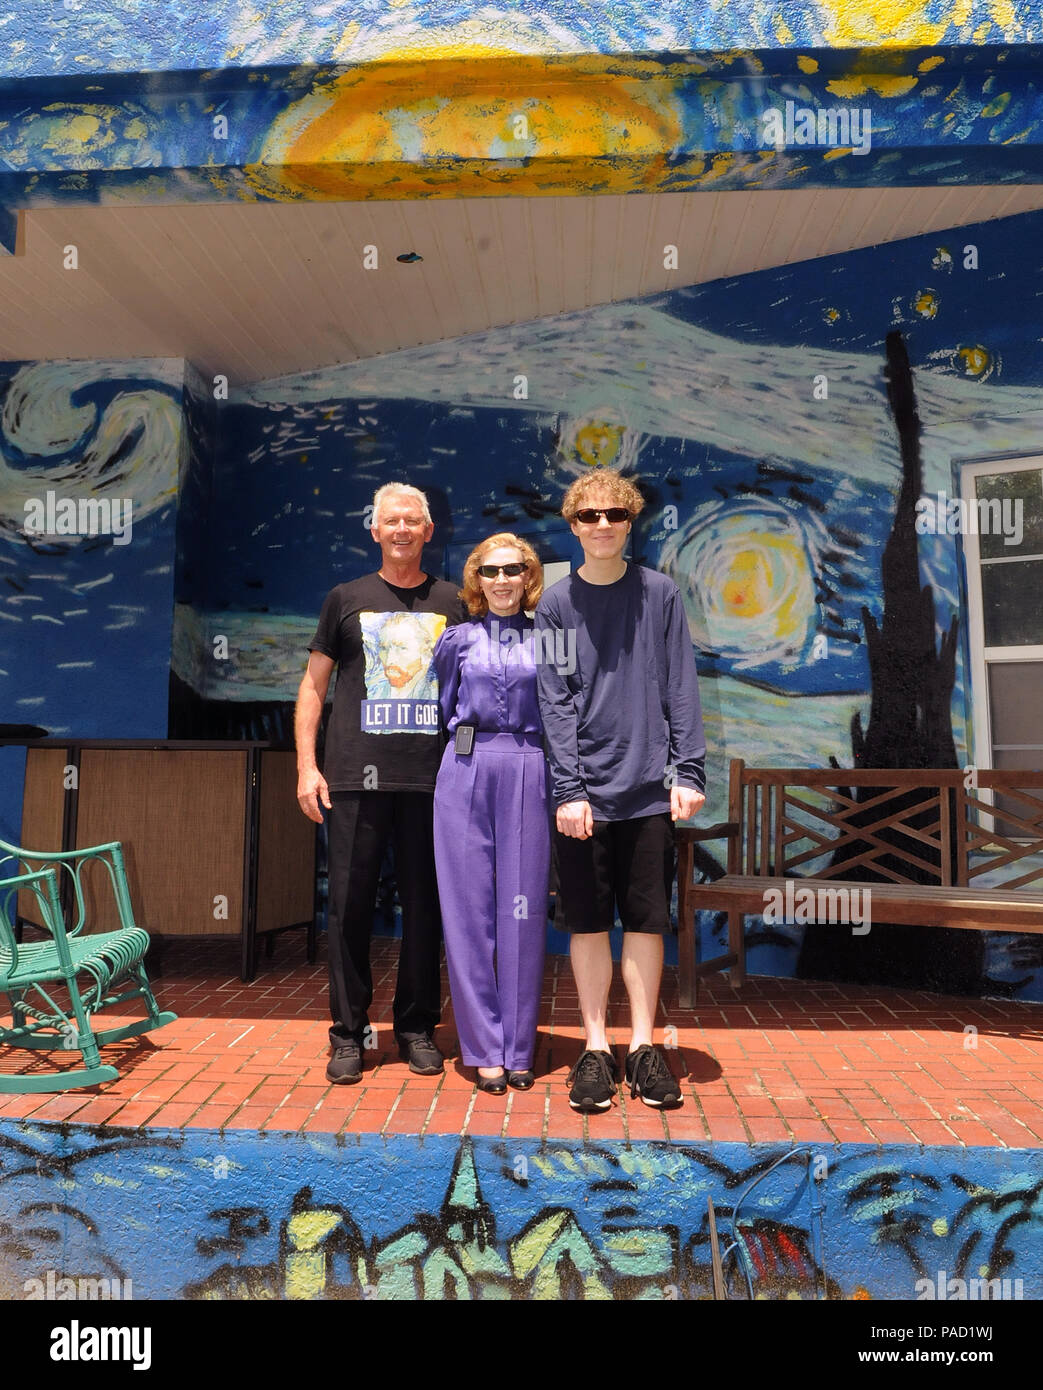 Florida, USA. 21 July 2018. Lubomir Jastrzebski (left), his wife, Nancy Nemhauser, and their son, Chip (right), pose in front of their mural-painted home on July 21, 2018 in Mount Dora, Florida. On July 17, 2018, the couple won a one year battle with the Mount Dora City Council to keep the van Gogh inspired art work on their wall and home. The code enforcement dispute began when the homeowners hired an artist to paint a wall outside their home in the likeness of van Gogh's painting 'The Starry Night' as a means to calm their 25 year-old son who is autistic and loves va - Stock Image